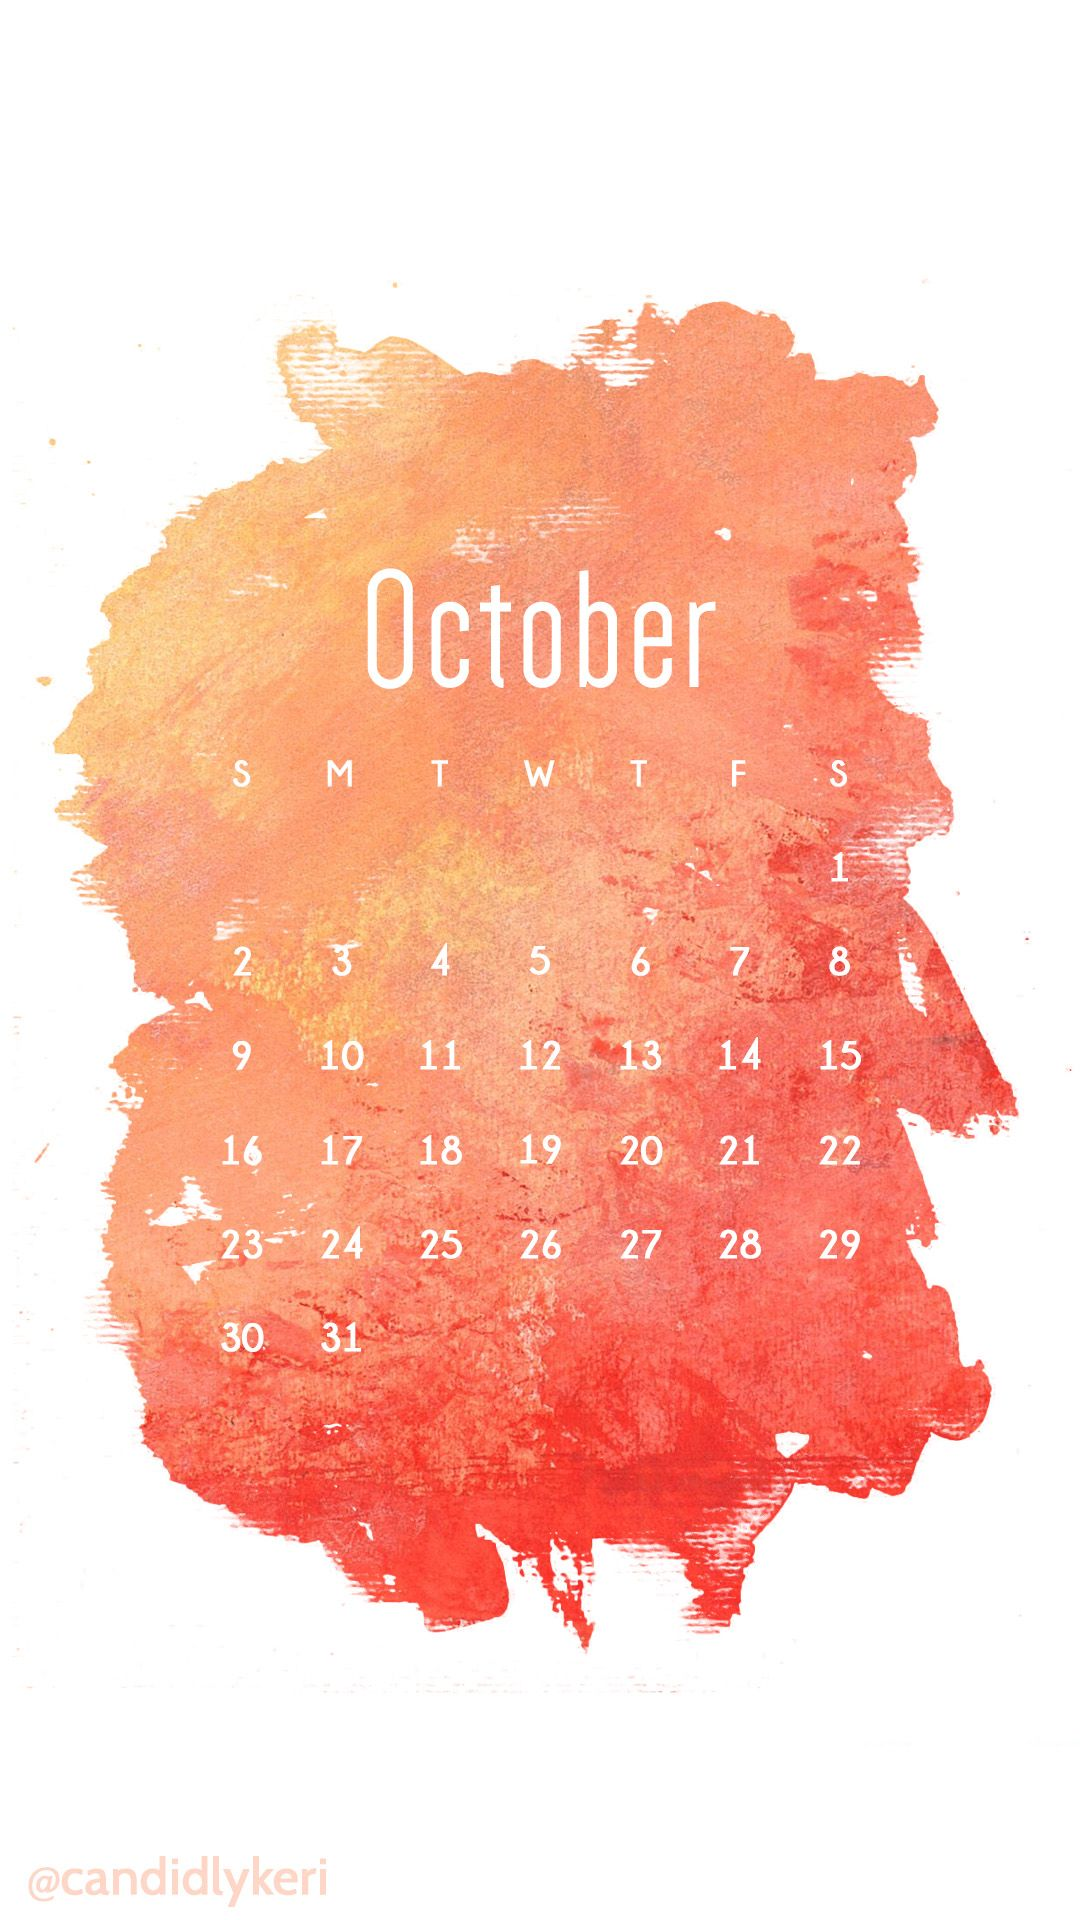 Watercolor Red Orange October Calendar 2016 Wallpaper You Can Download For  Fr.